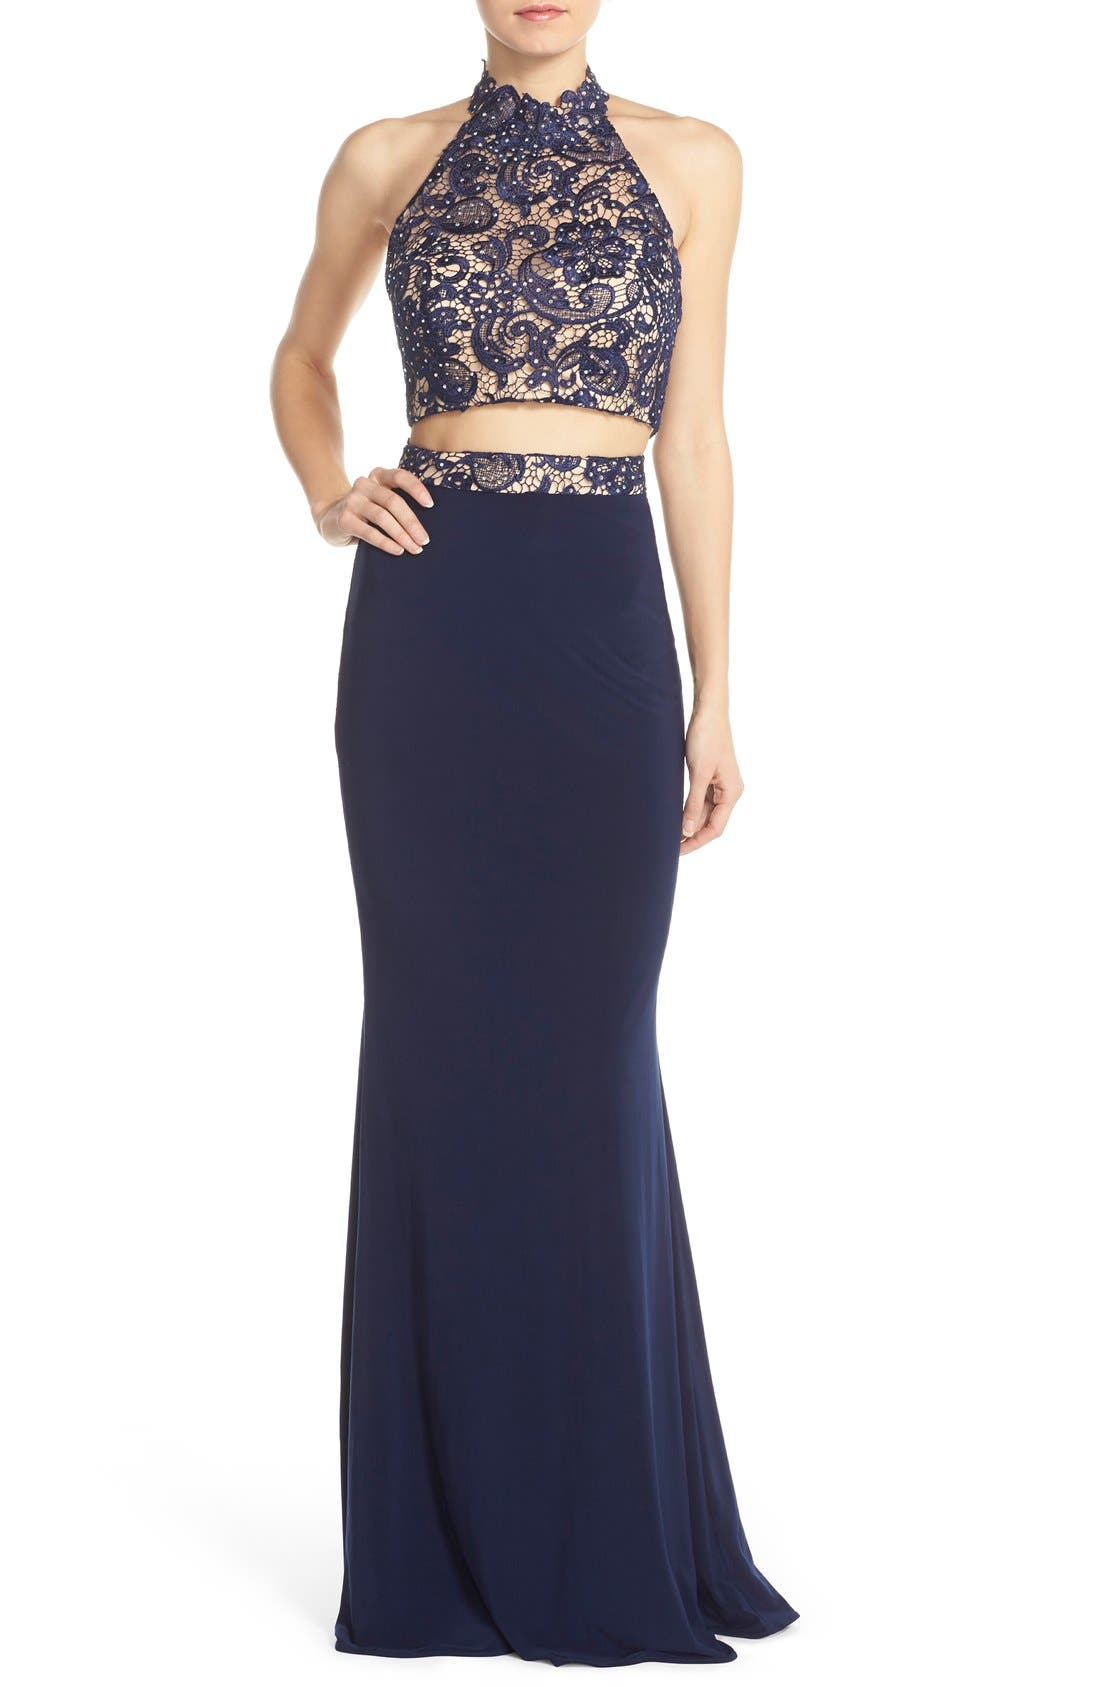 Alternate Image 1 Selected - Faviana Embellished Jersey Two-Piece Gown